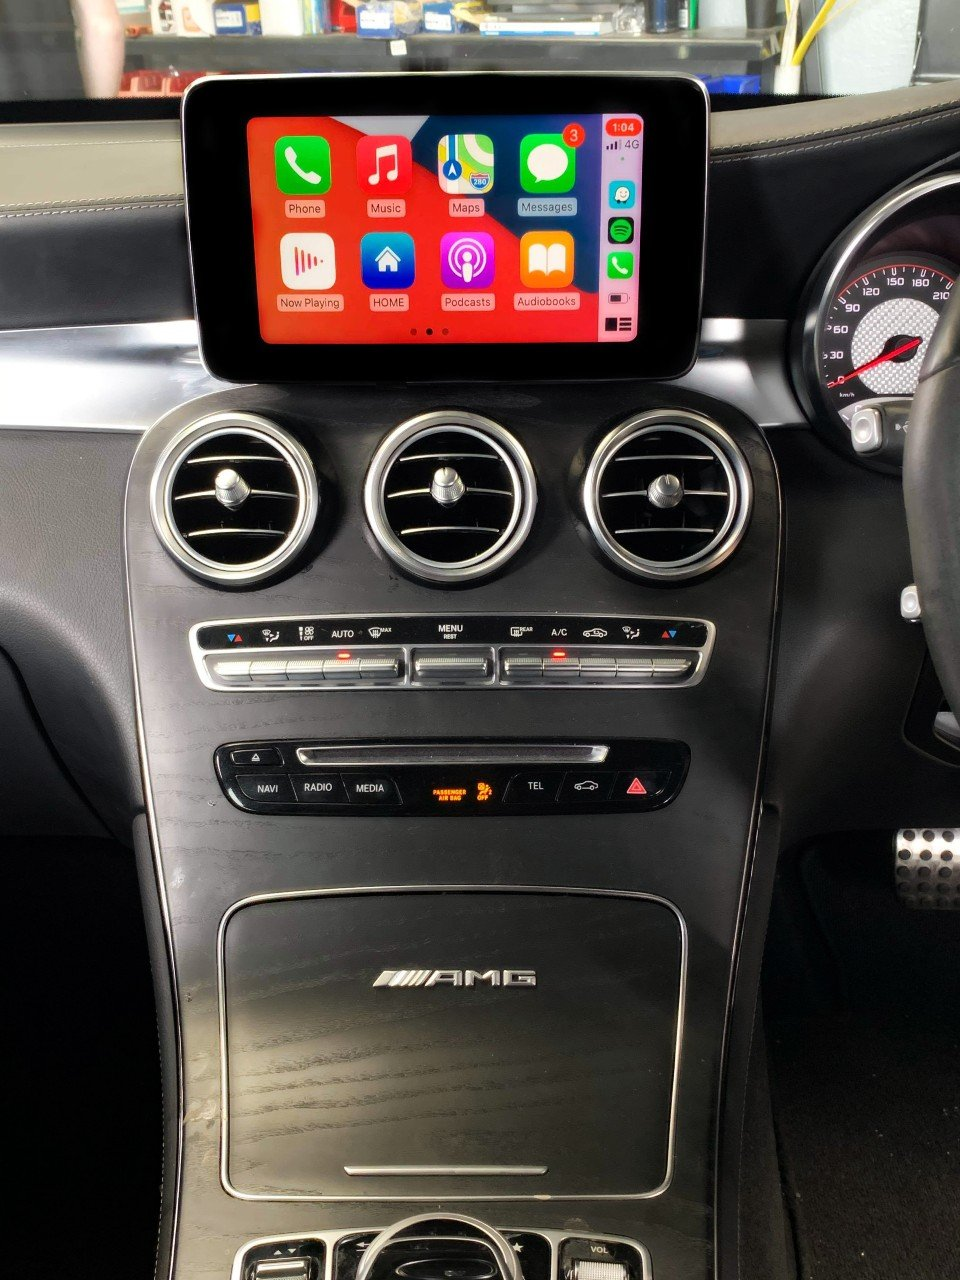 Mercedes Benz – Apple CarPlay + Android Auto Integration - https://www.newcastleprosound.com.au/wp-content/uploads/2021/02/AMGCARPLAY.jpg